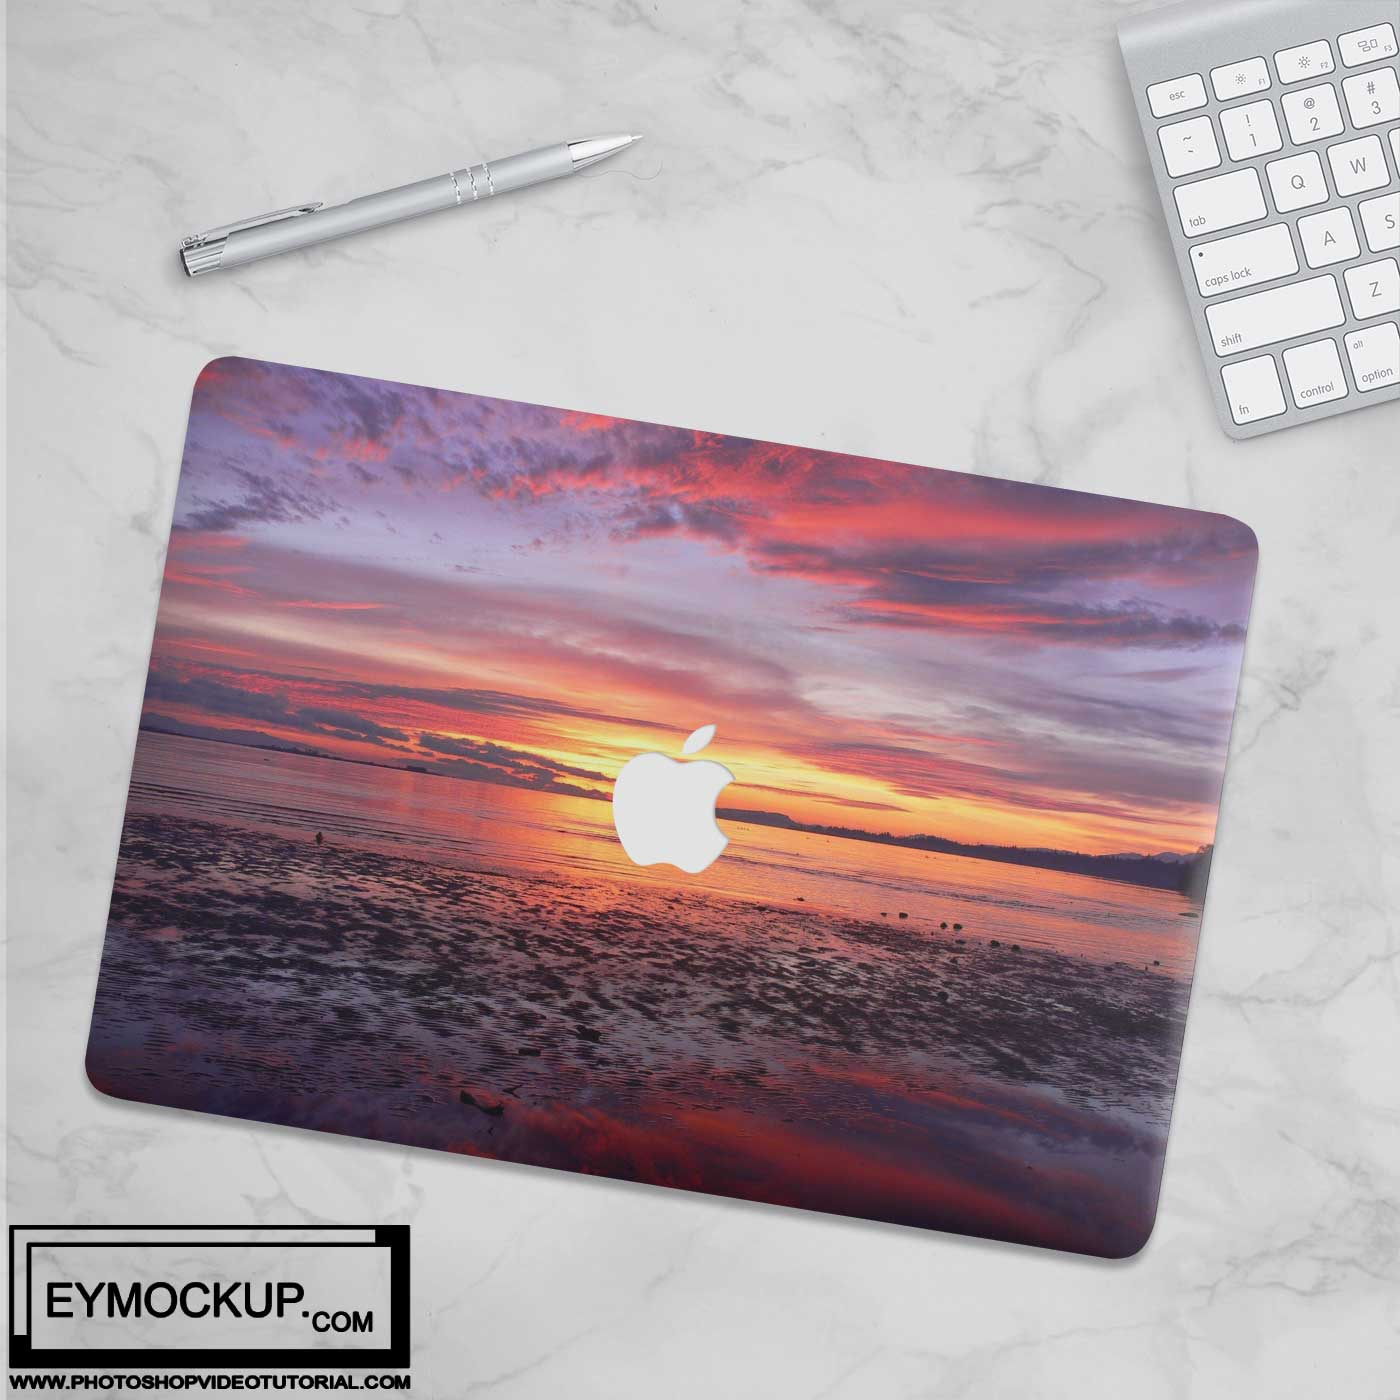 Macbook Mockup Template